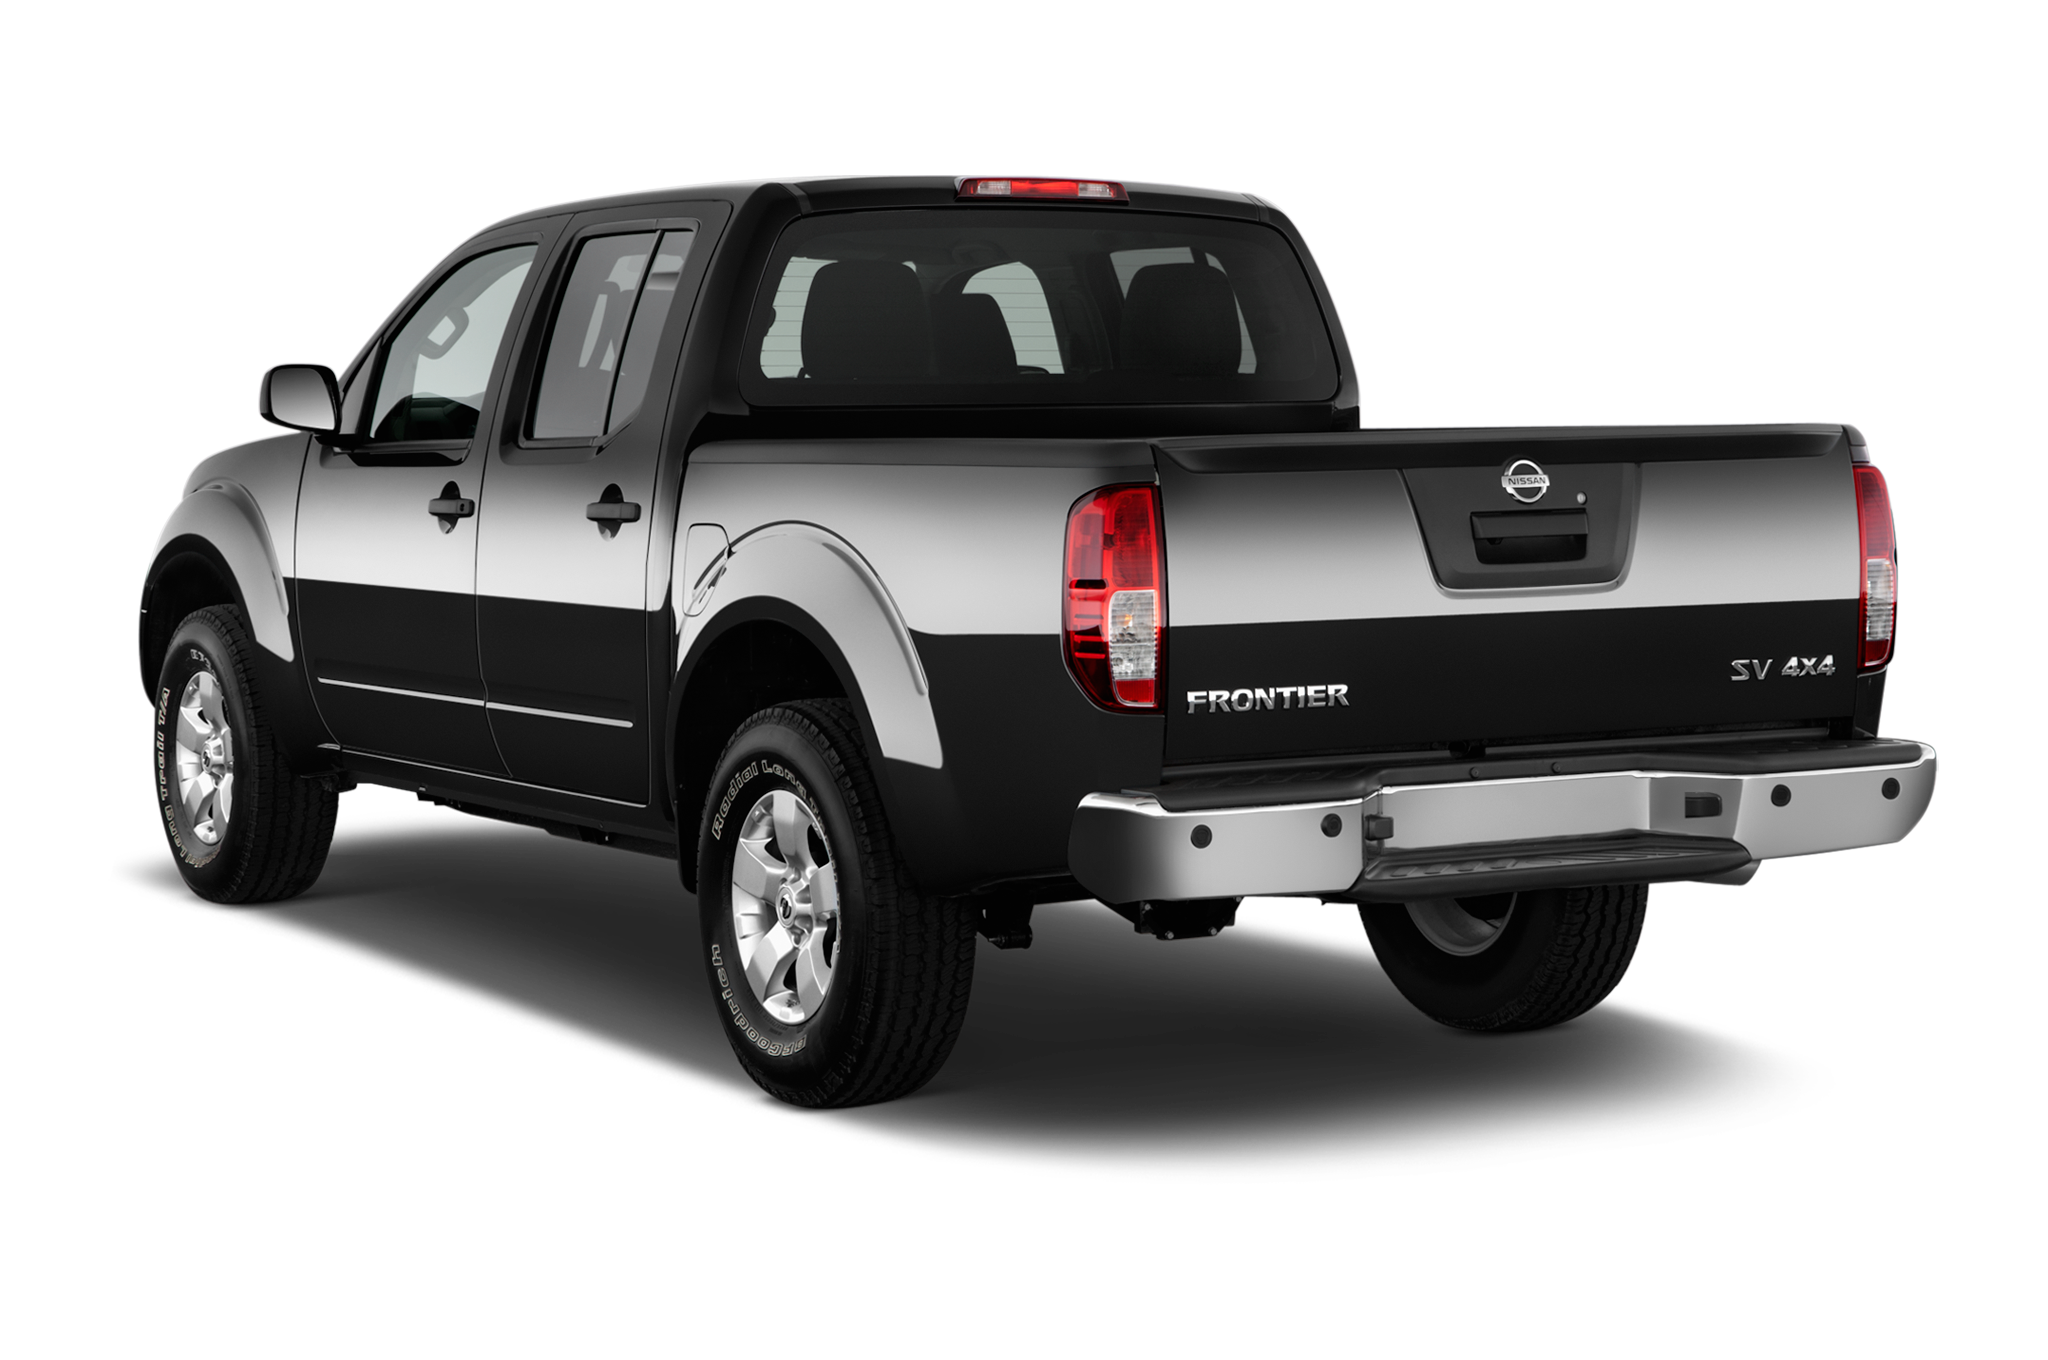 2015 Nissan Frontier Xterra To Cost 18 850 And 24 520 Respectively